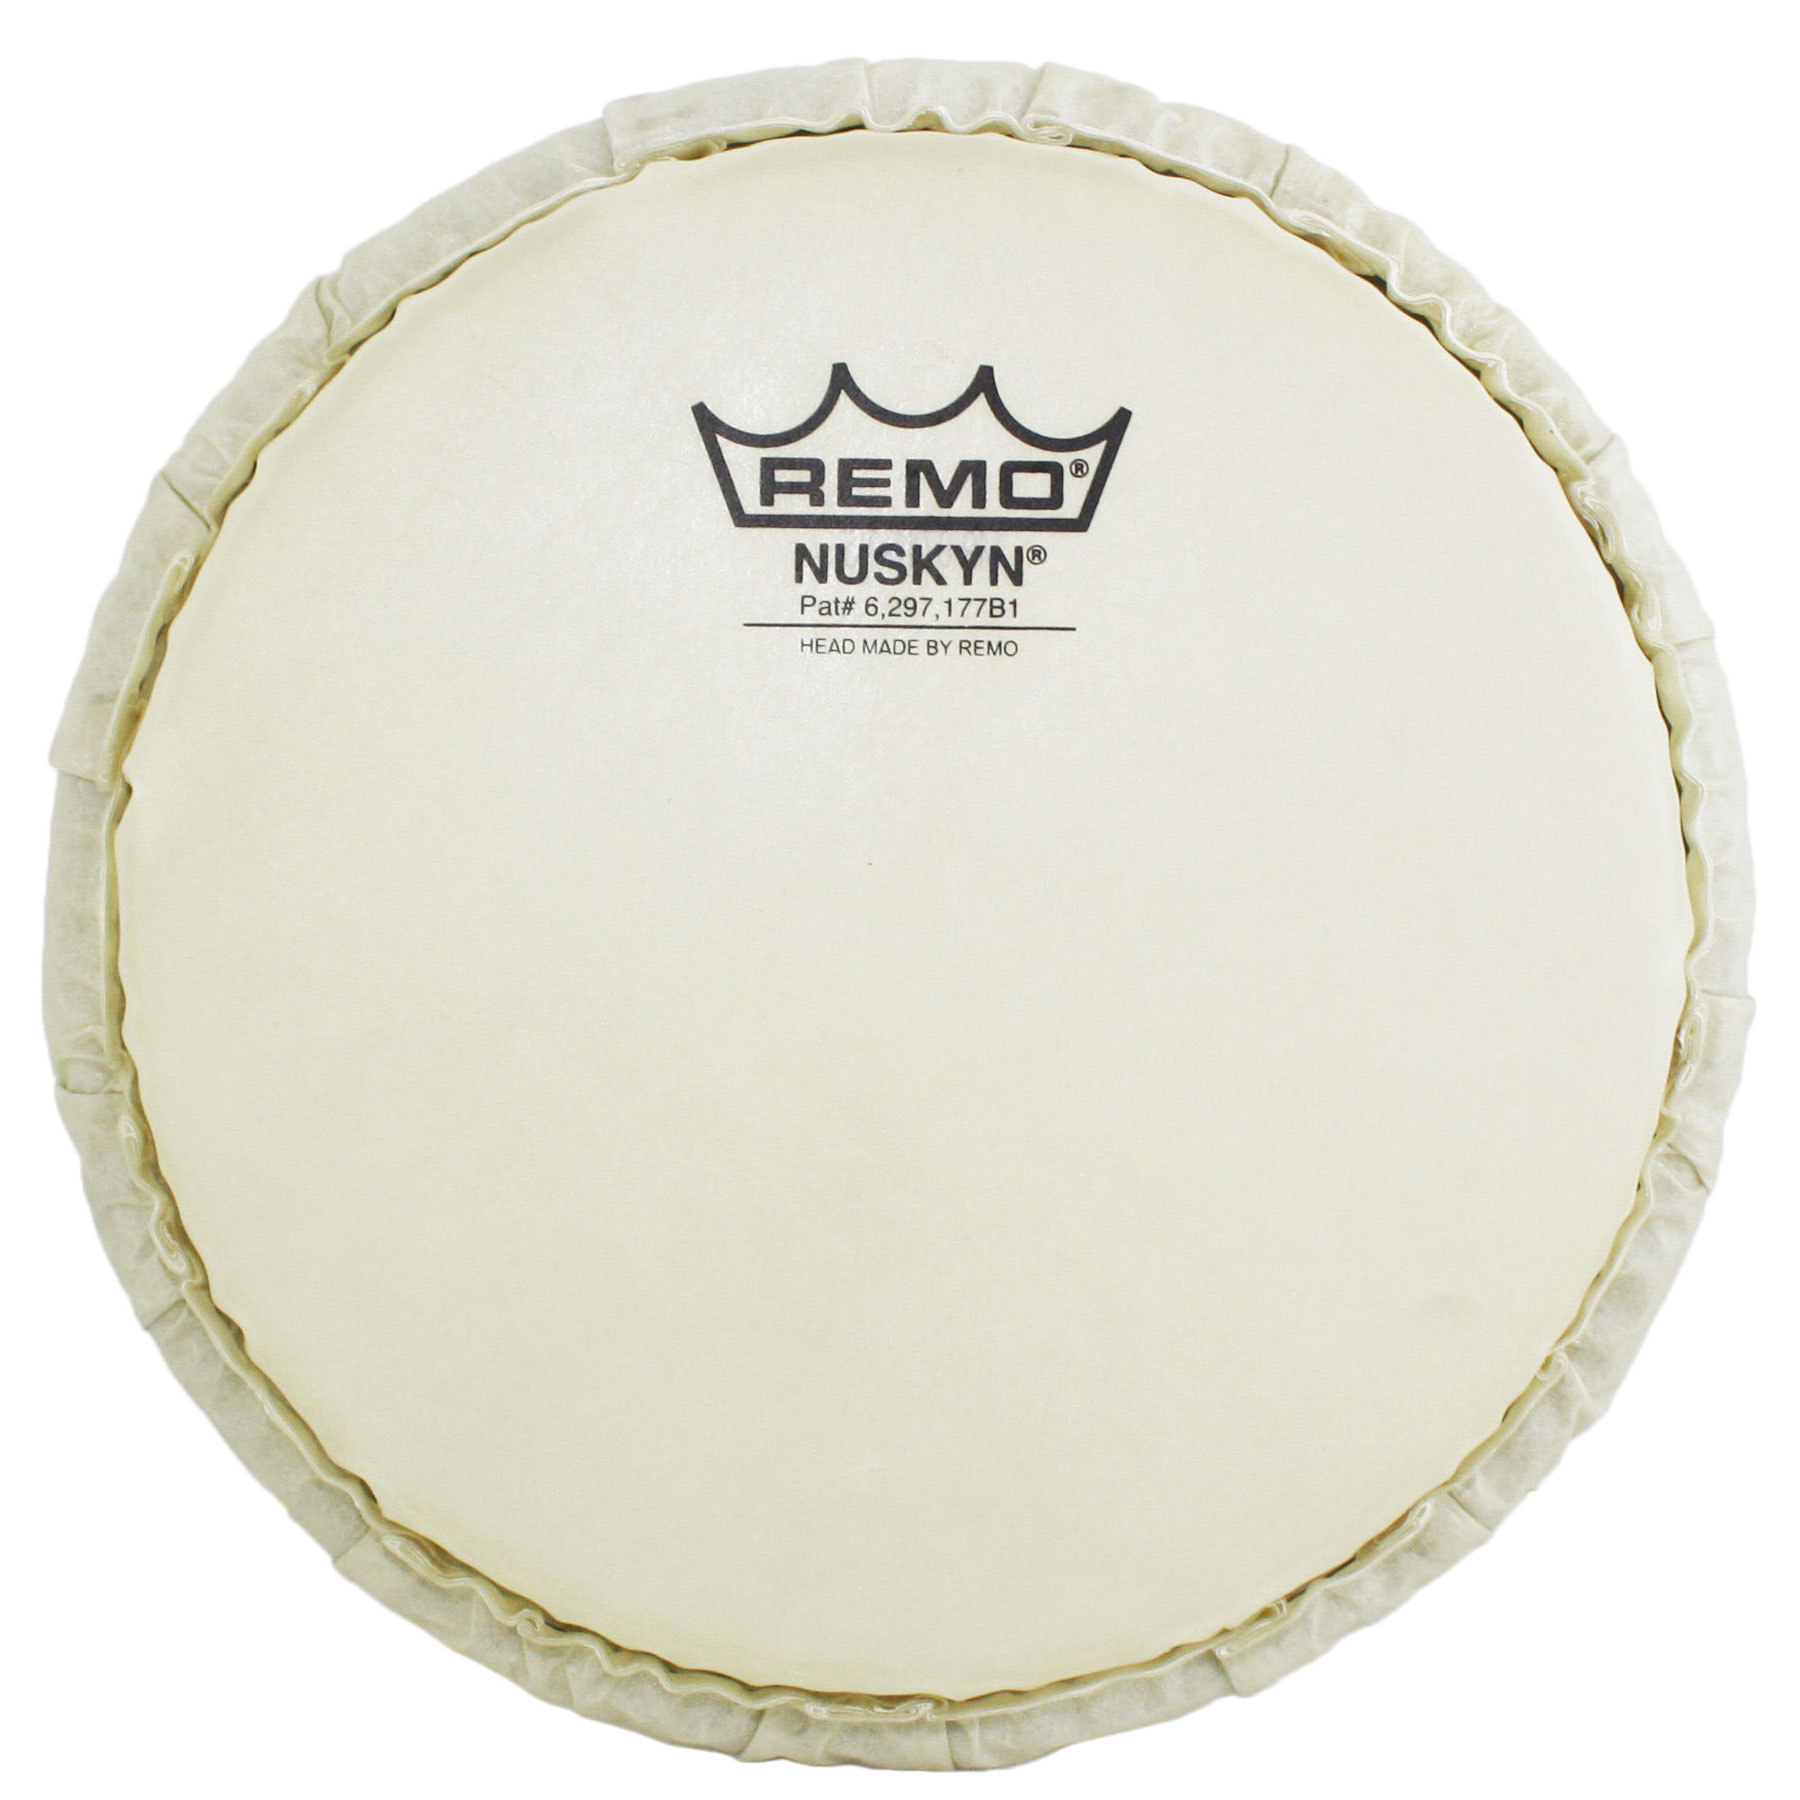 "Remo 9"" Tucked Nuskyn Bongo Drum Head"